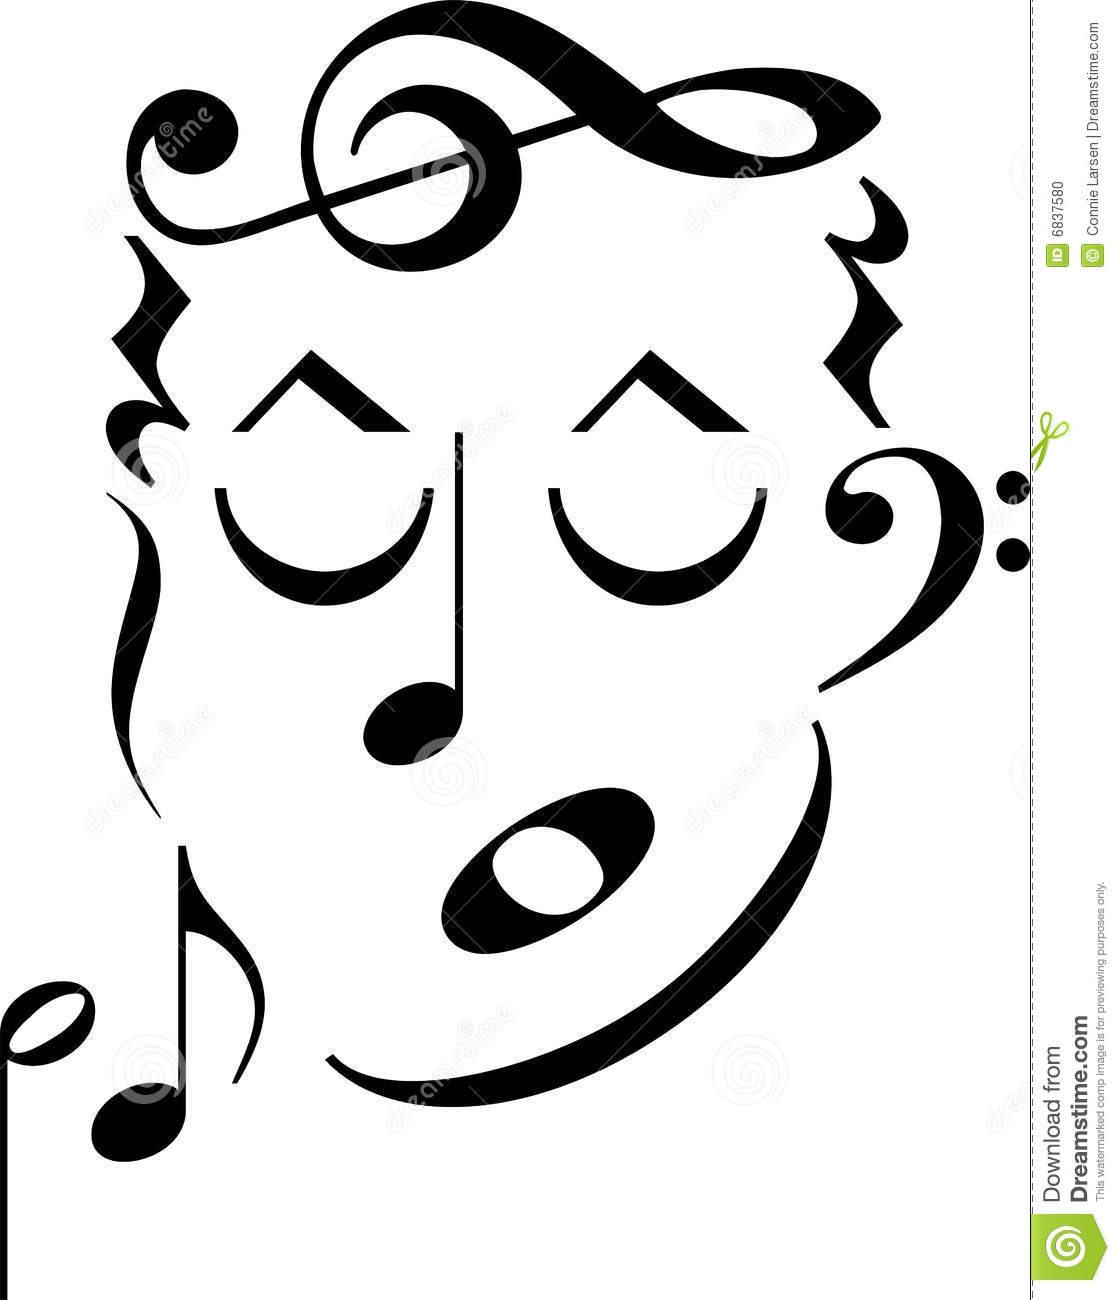 Music Symbol Face Stock Illustration Illustration Of Drawings 6837580